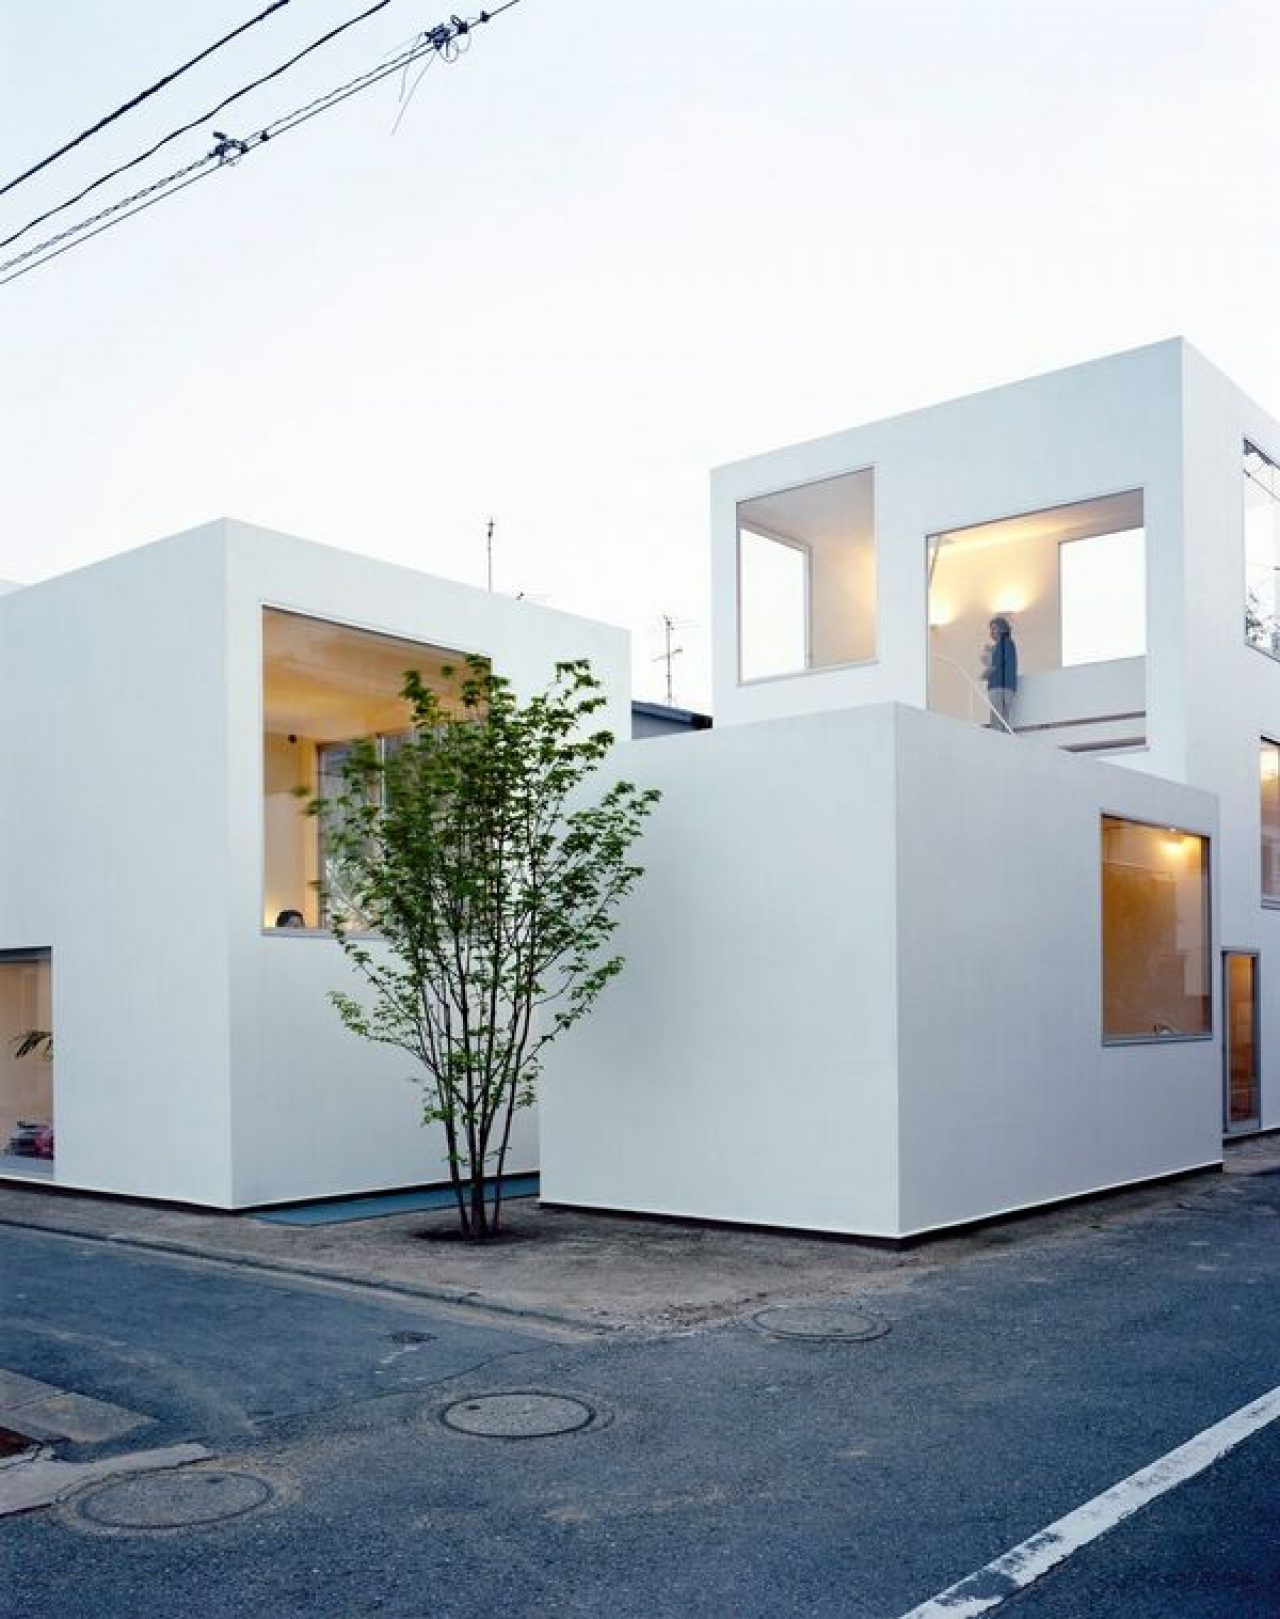 The Japanese House: Architecture And Life After 1945 — Ala Champ